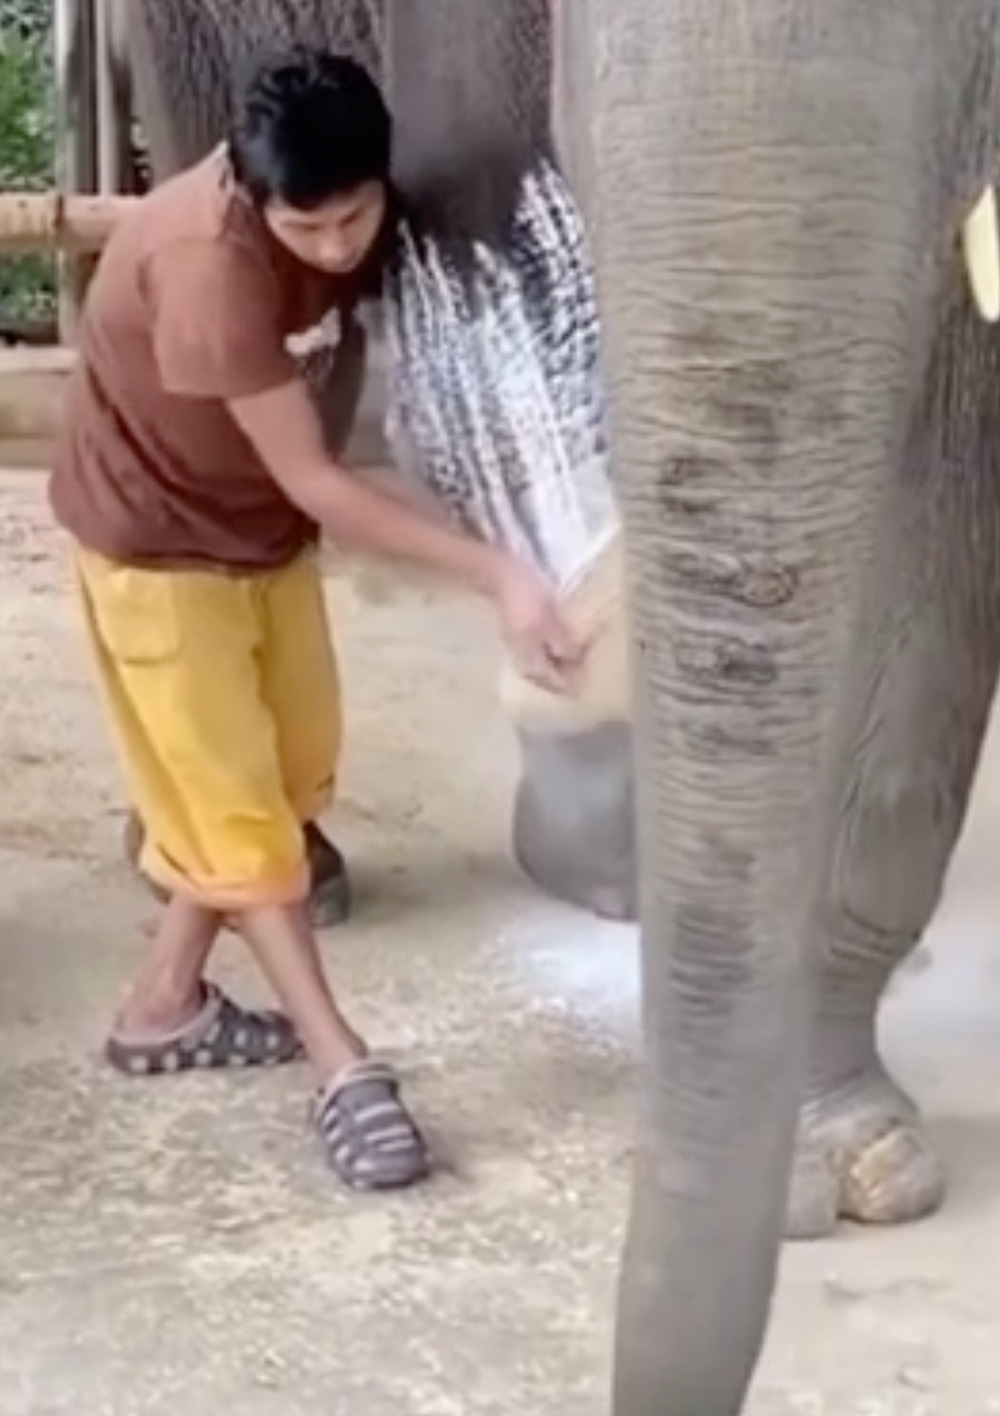 The elephant's leg is powdered to help slide on the prosthetic.